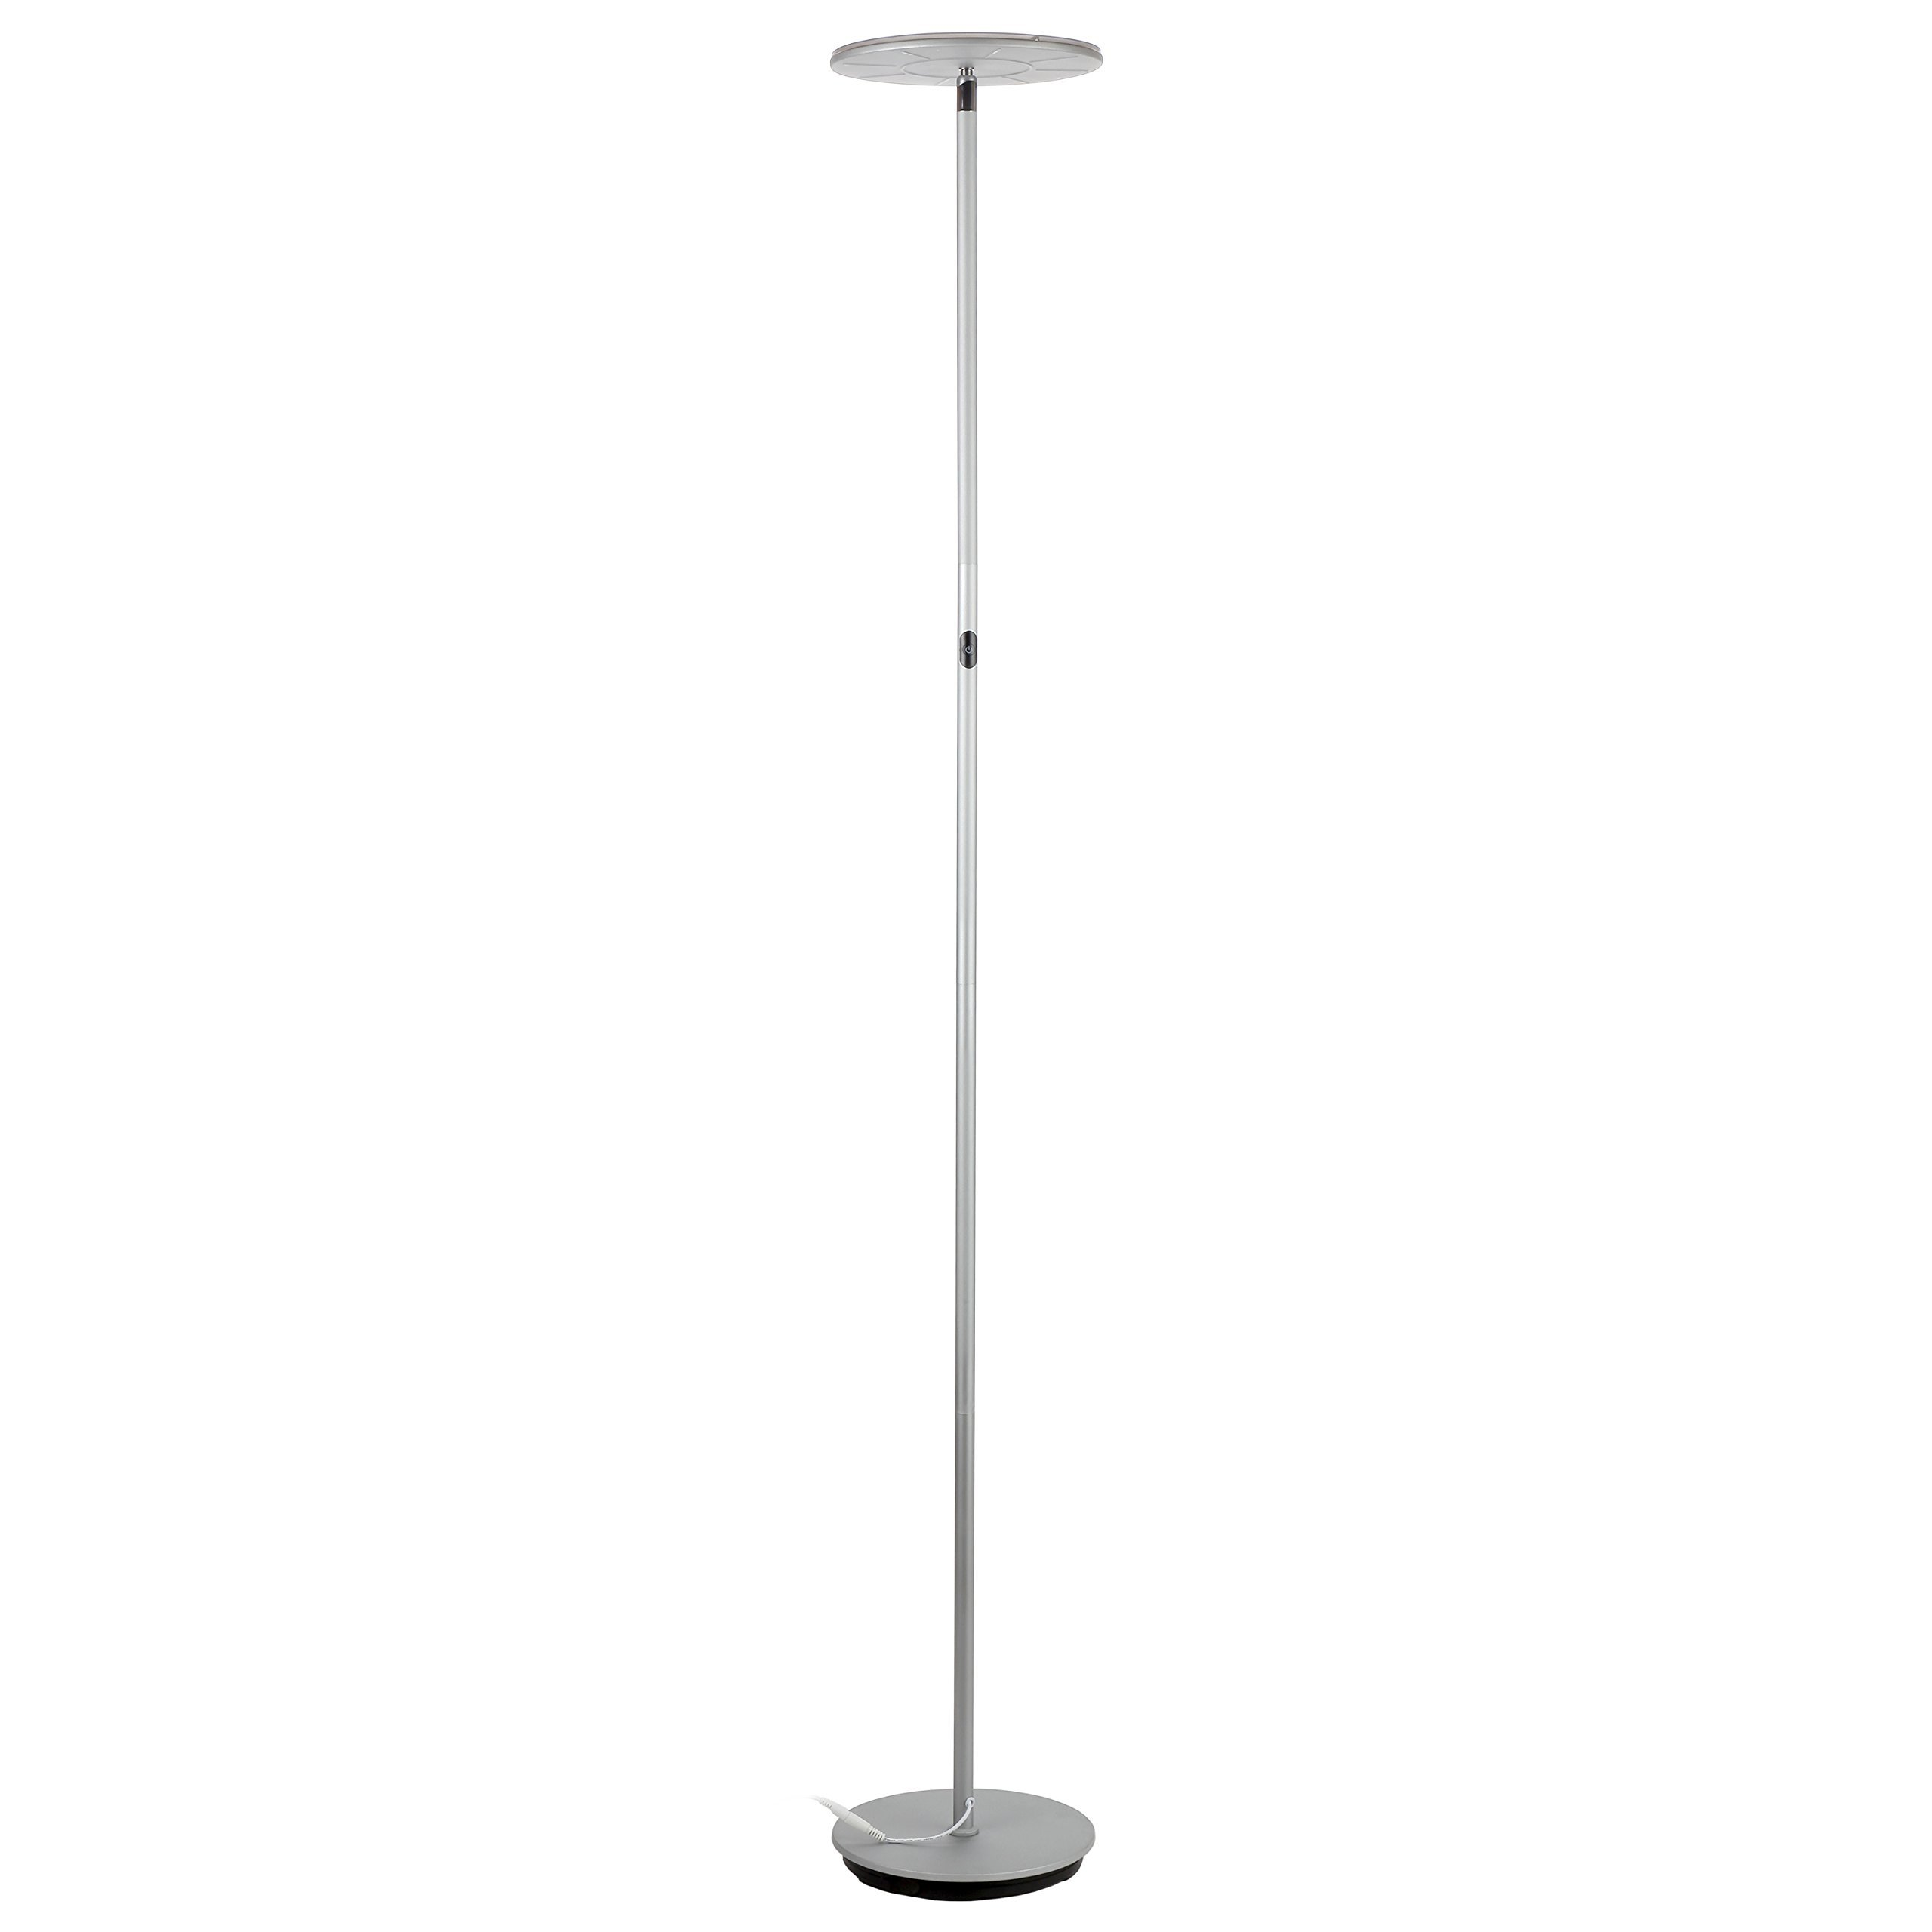 Brightech SKY LED Torchiere Floor Lamp - Energy Saving, Dimmable Adjustable Lamp, Reading Lamp- Modern Tall Standing Pole Uplight Lamp Light for Living Room, Dorm, Bedroom, and Office -Platinum Silver